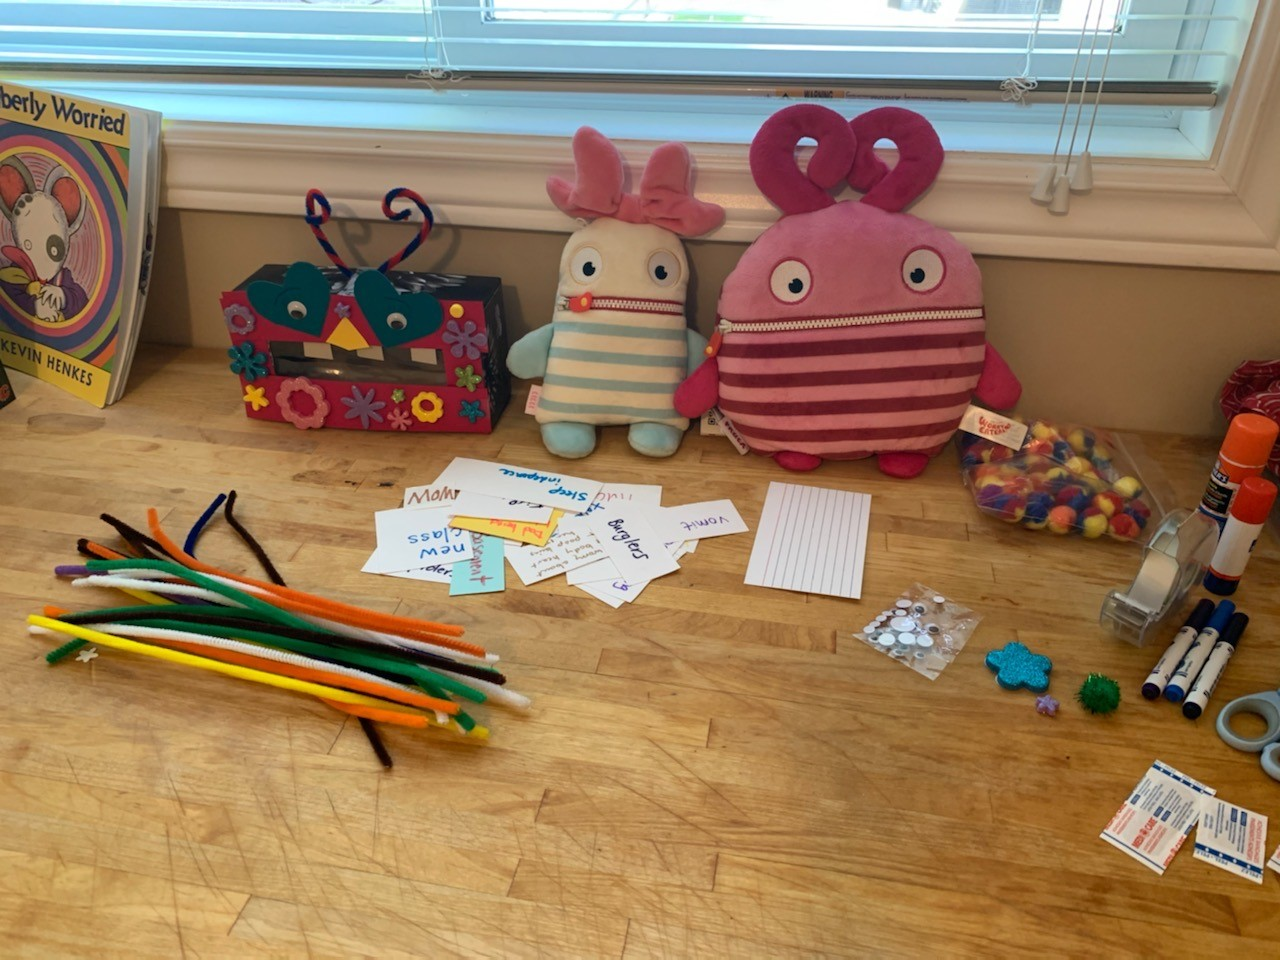 Several worry eater plush toys and a homemade worry eater box sit among a selection of craft materials prepared for a worry eater making activity.